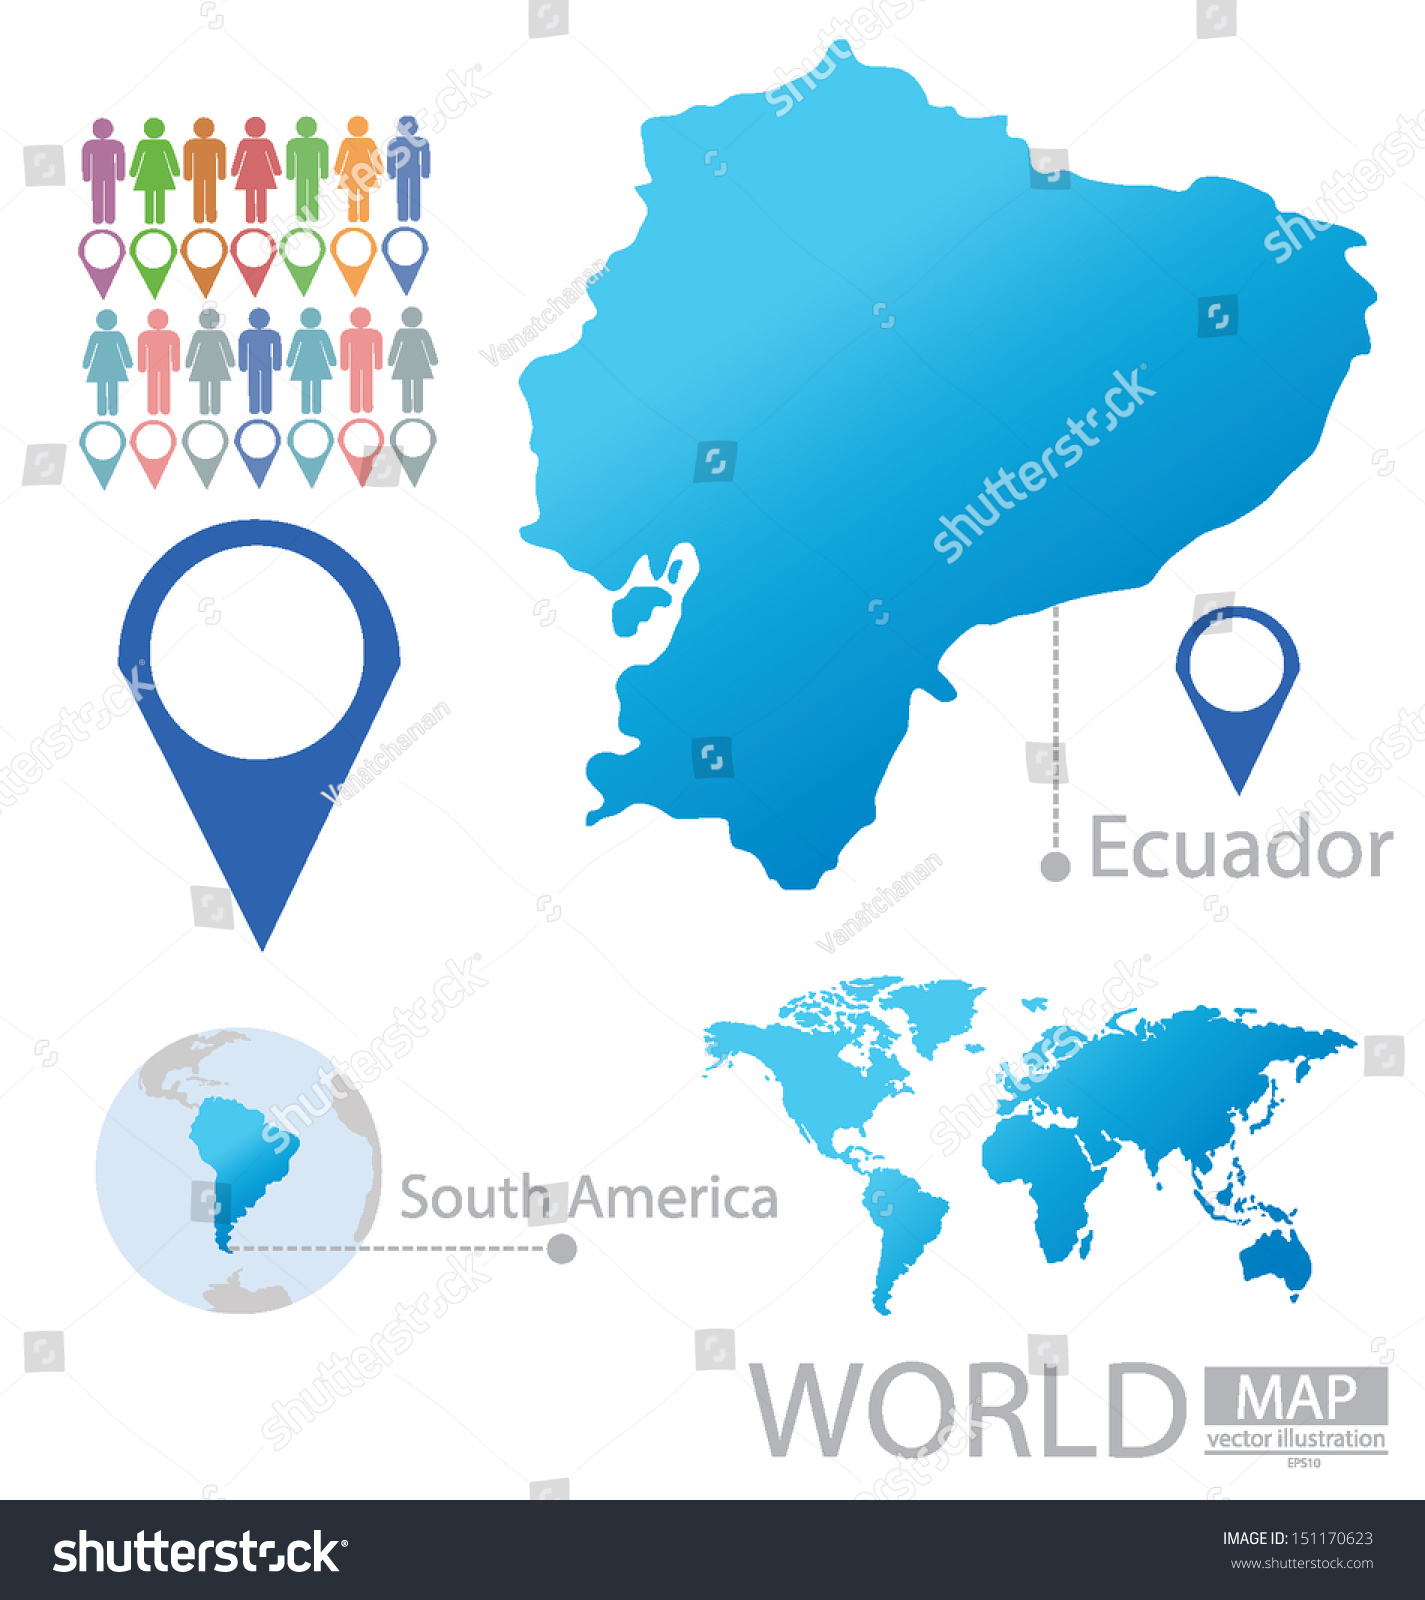 Ecuador South America World Map Vector Stock Vector 151170623